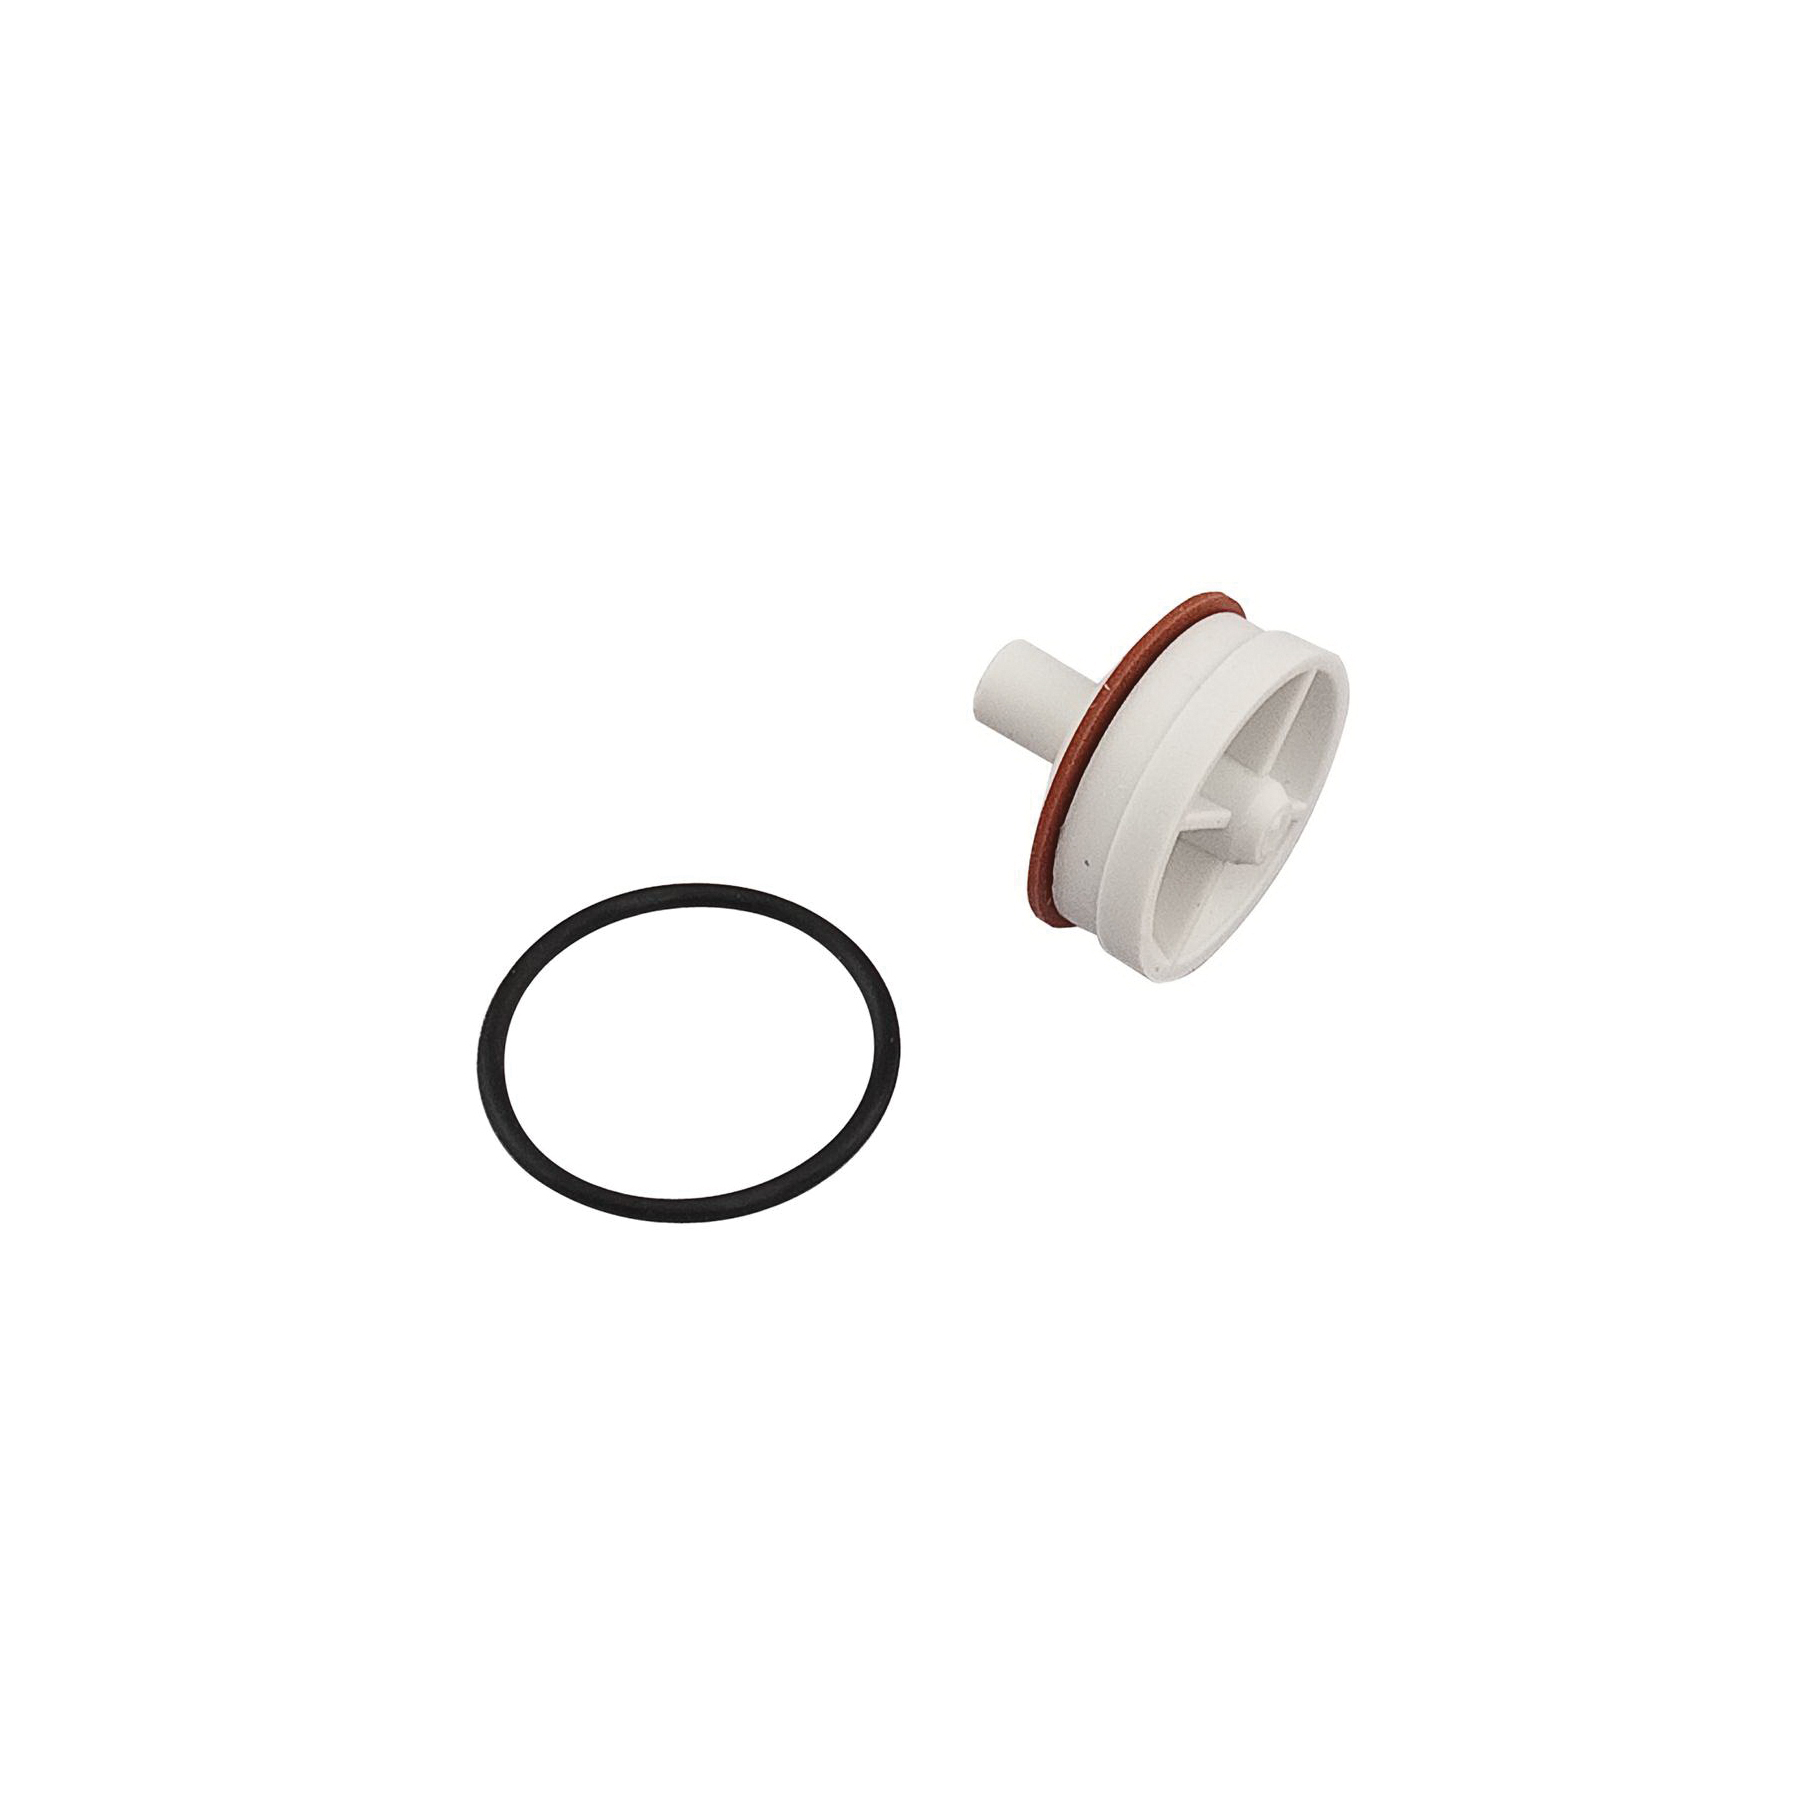 WATTS® 0887171 Repair Kit, For Use With 188/LF288/288/LF388/388 1/2 in Anti-Siphon Vacuum Breaker